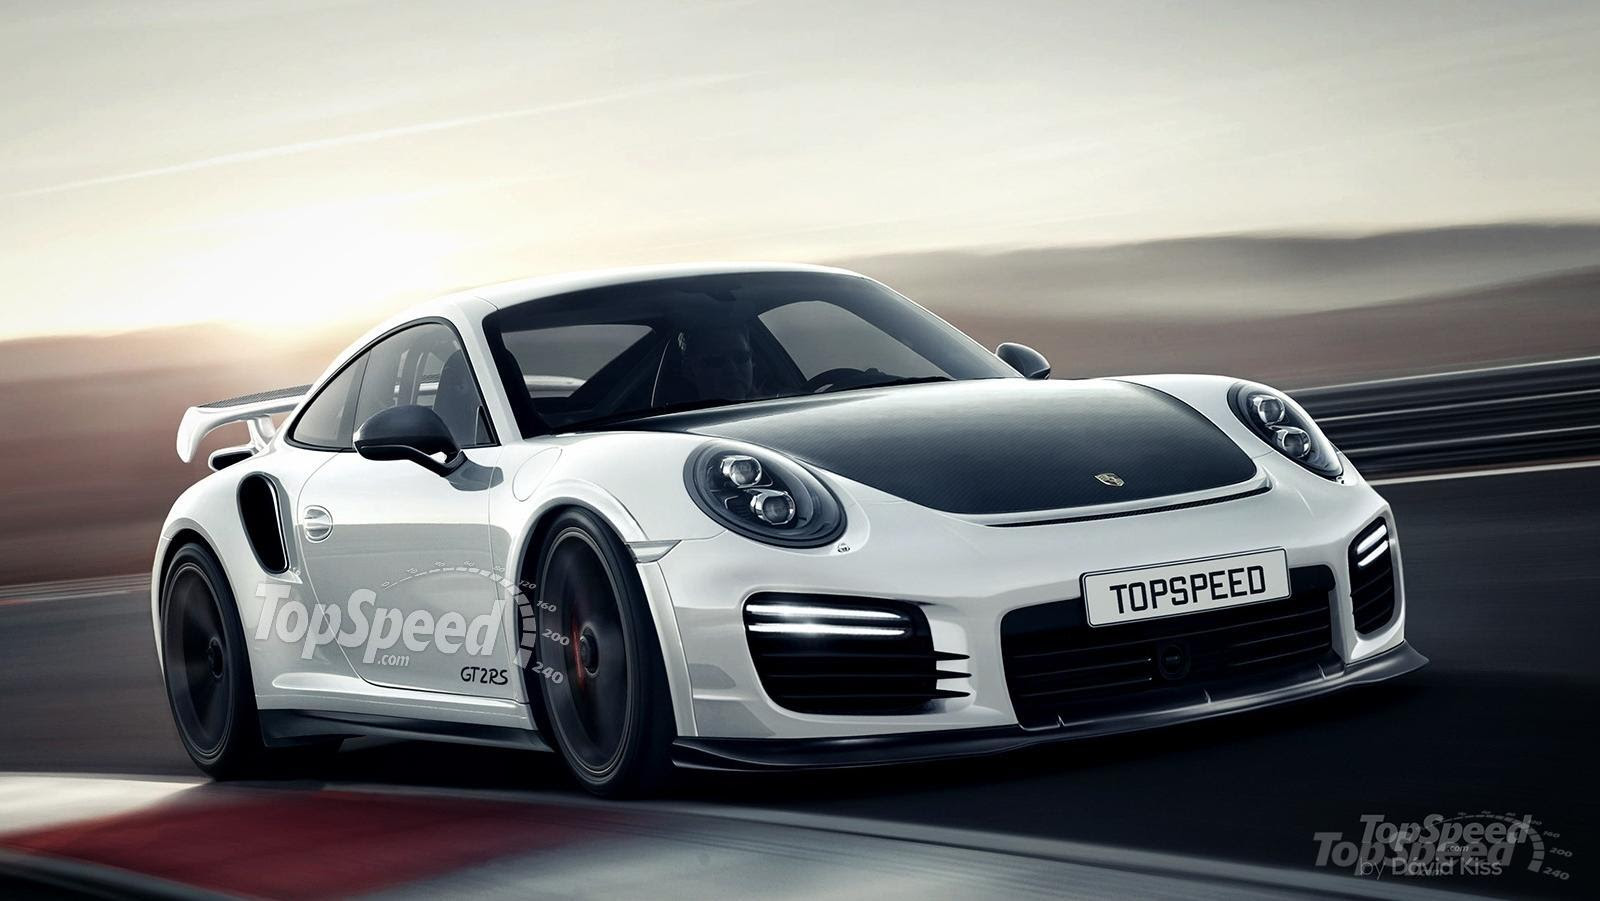 2018 Porsche 911 Gt2 Spy Shots | 2017 - 2018 Best Cars Reviews